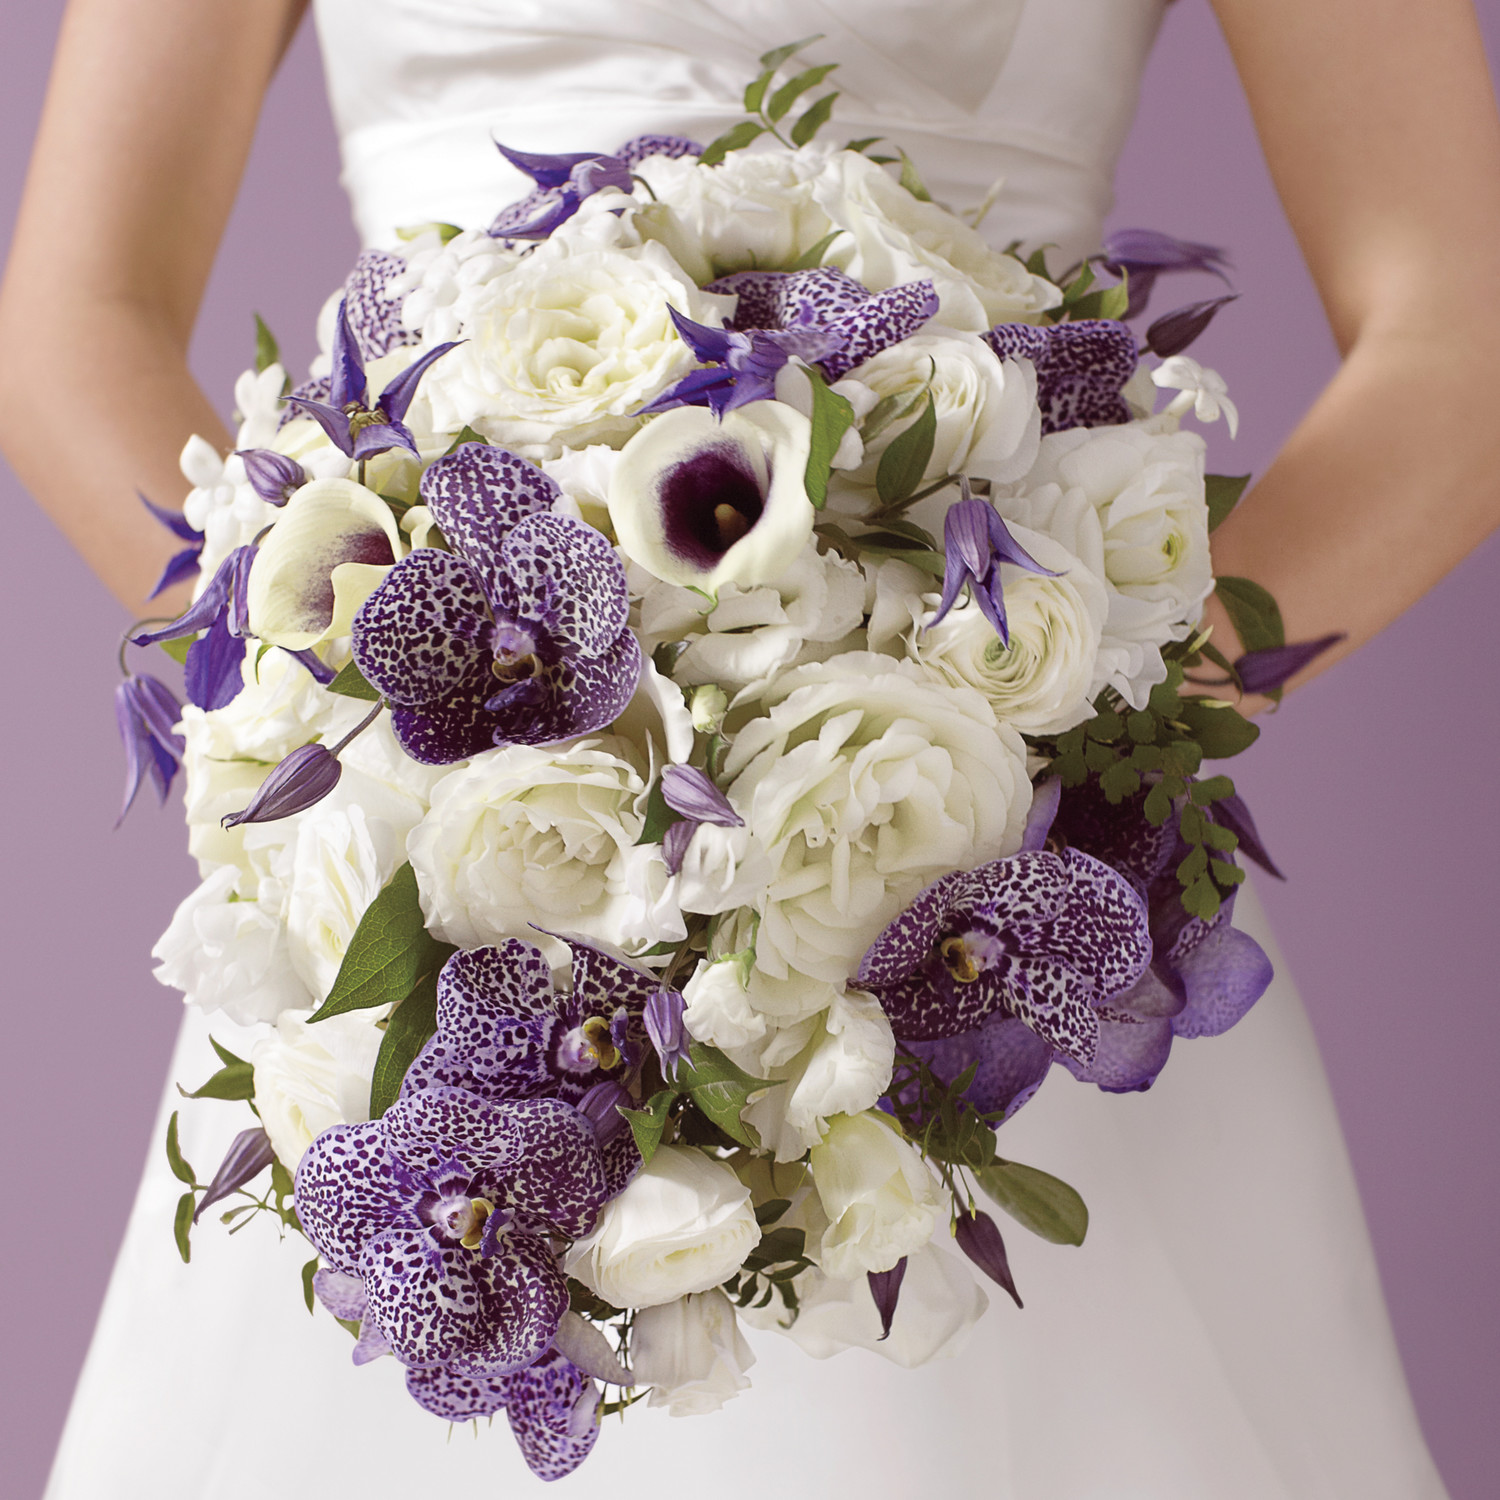 Flower Wedding Bouquet: Cool-Weather Wedding Flowers